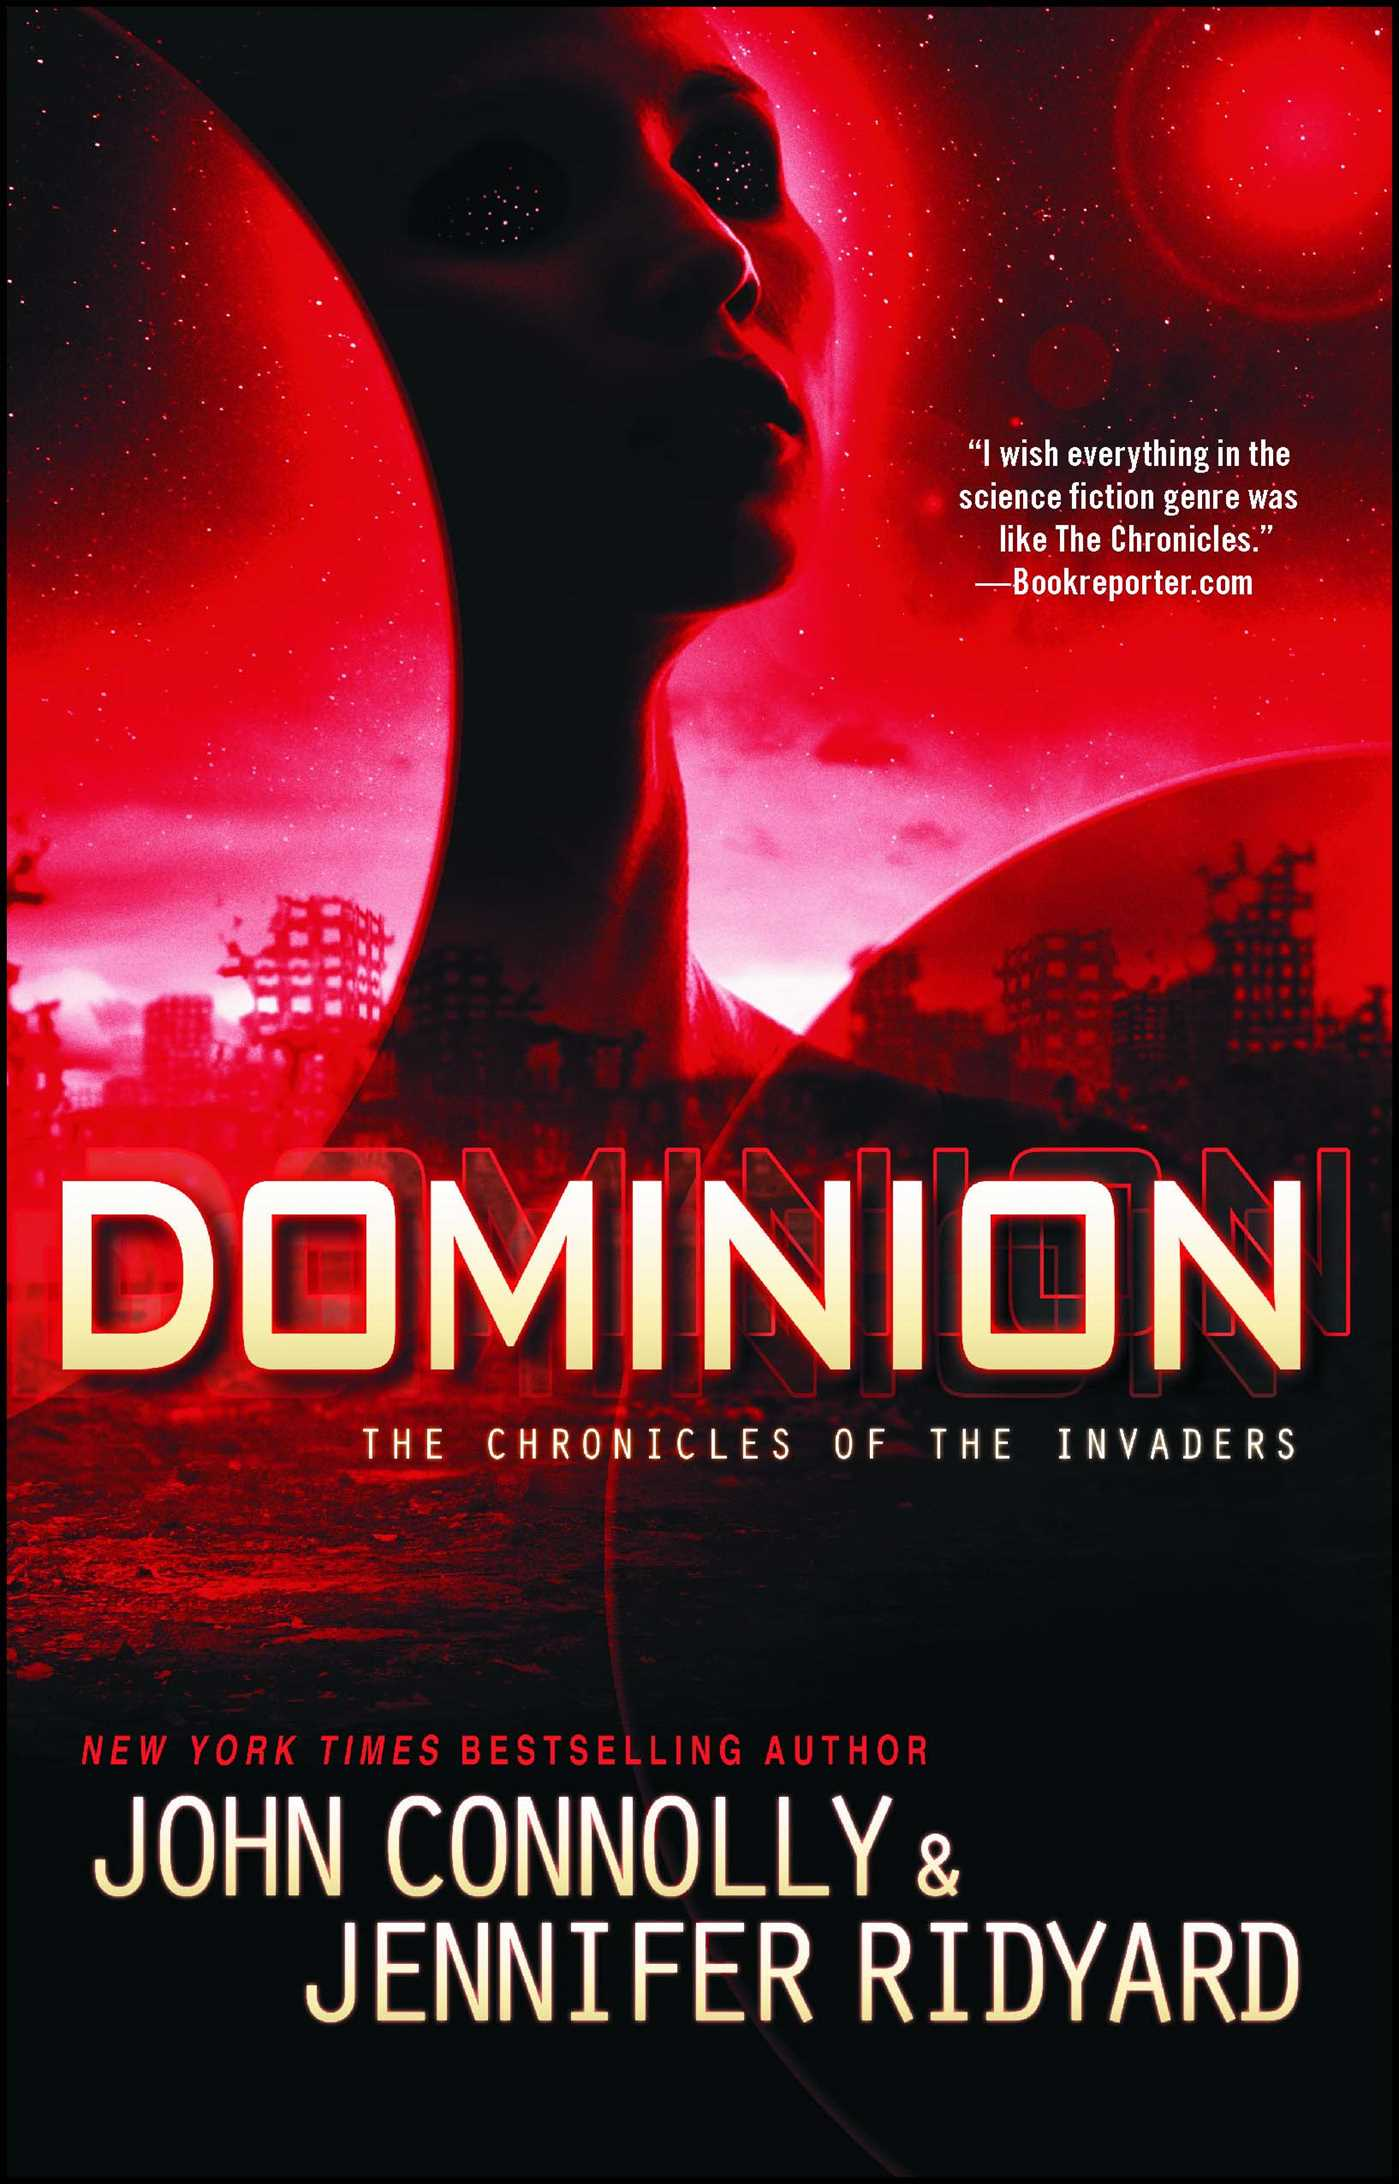 Dominion 9781476757193 hr